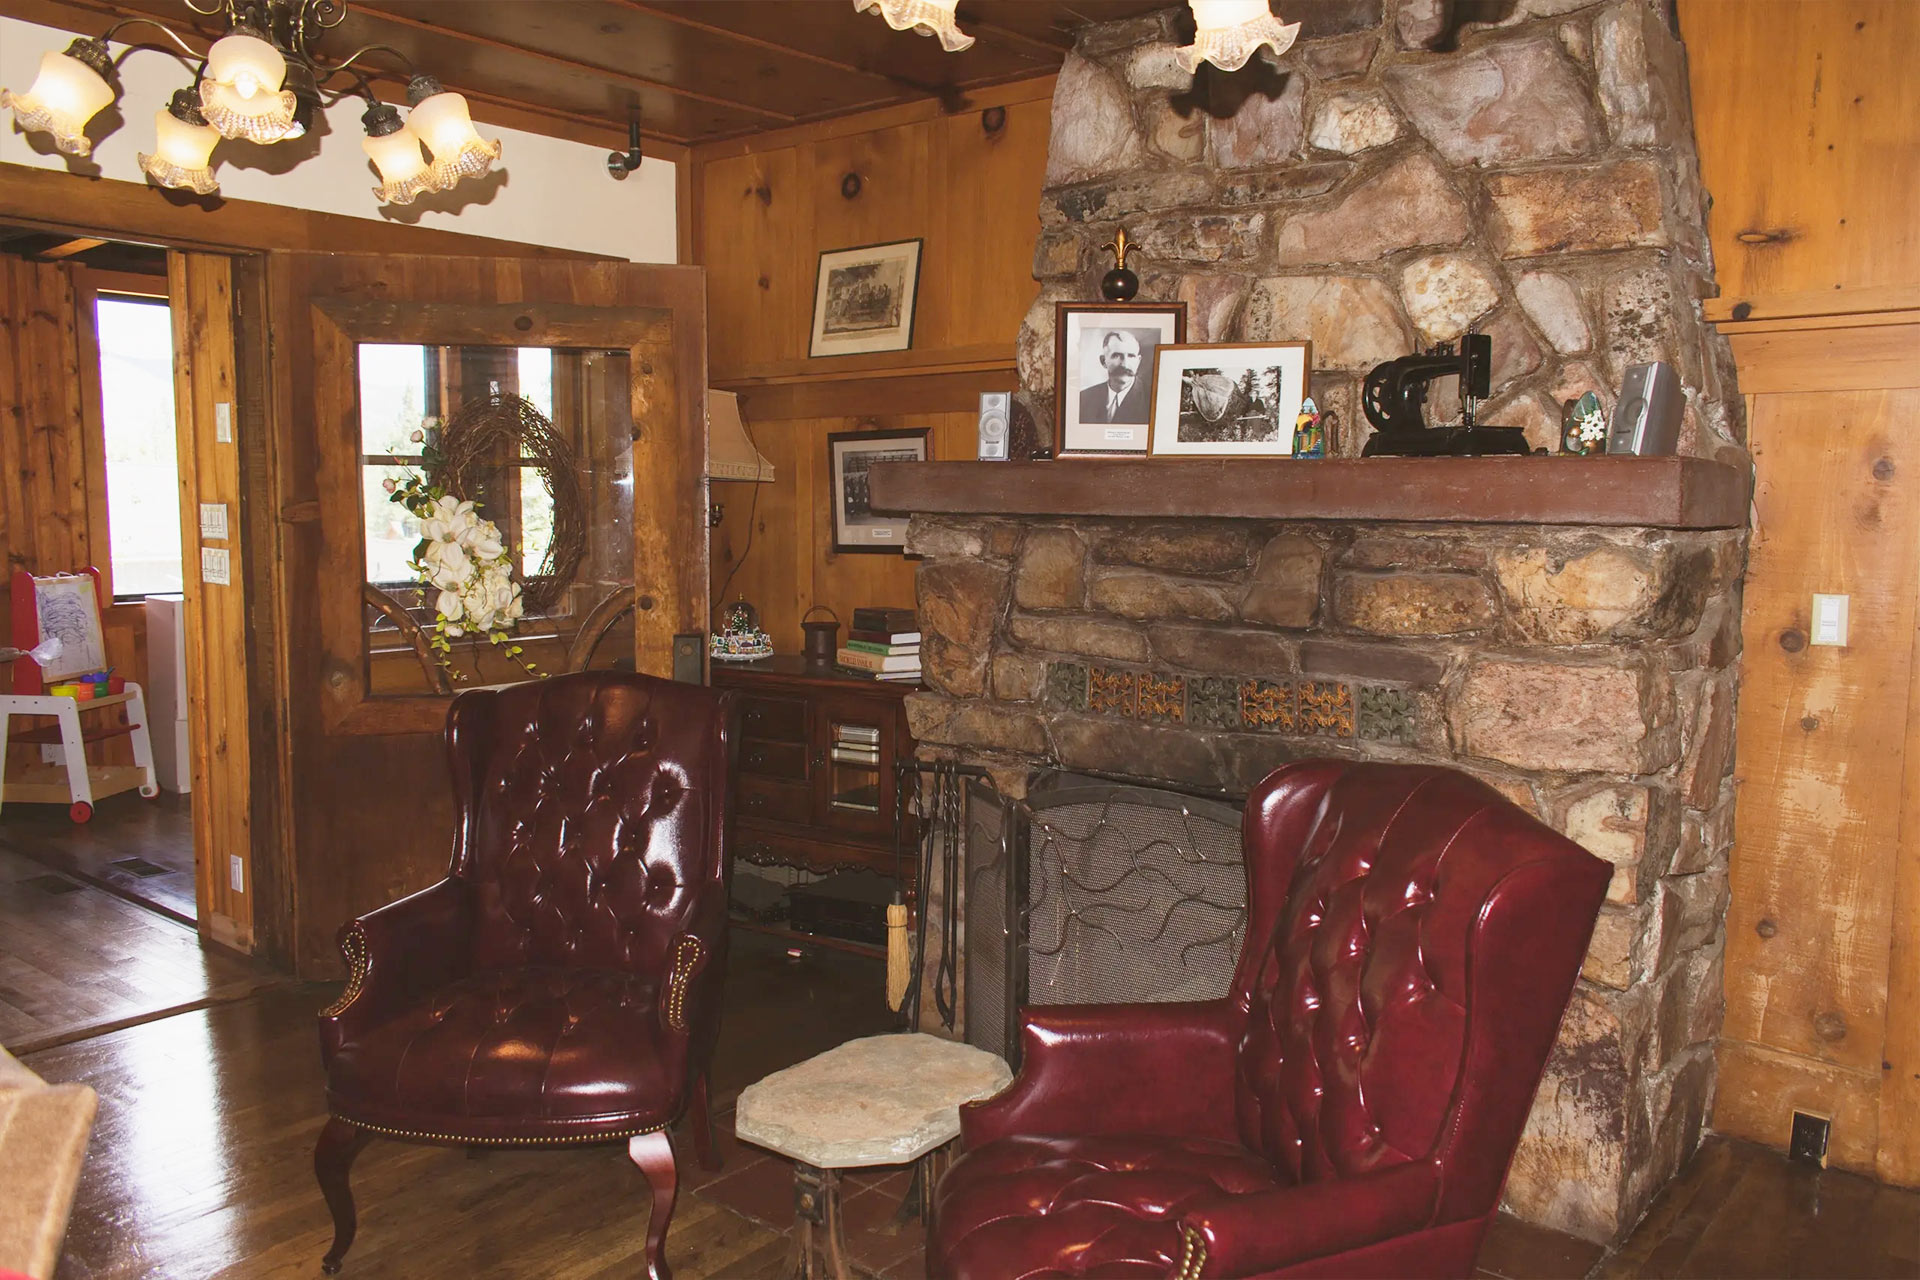 Stone fireplace with burgundy colored chairs in the Knickerbocker Mansion